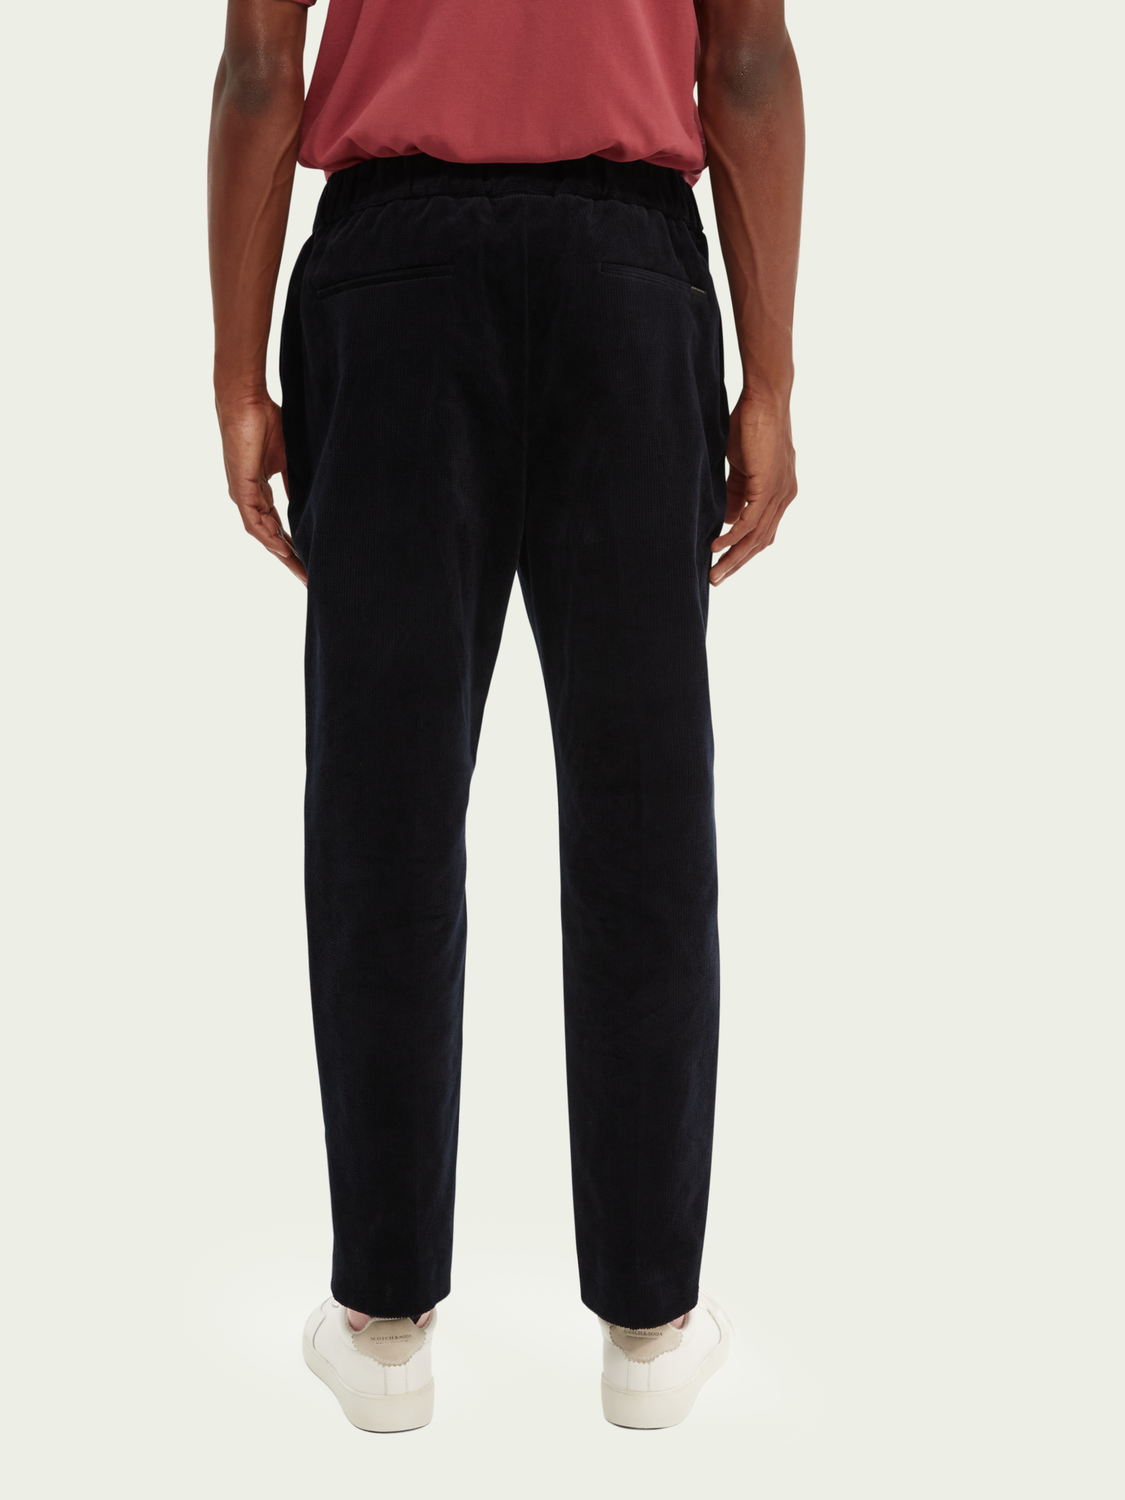 Men Fave corduroy tapered-fit organic cotton jogger